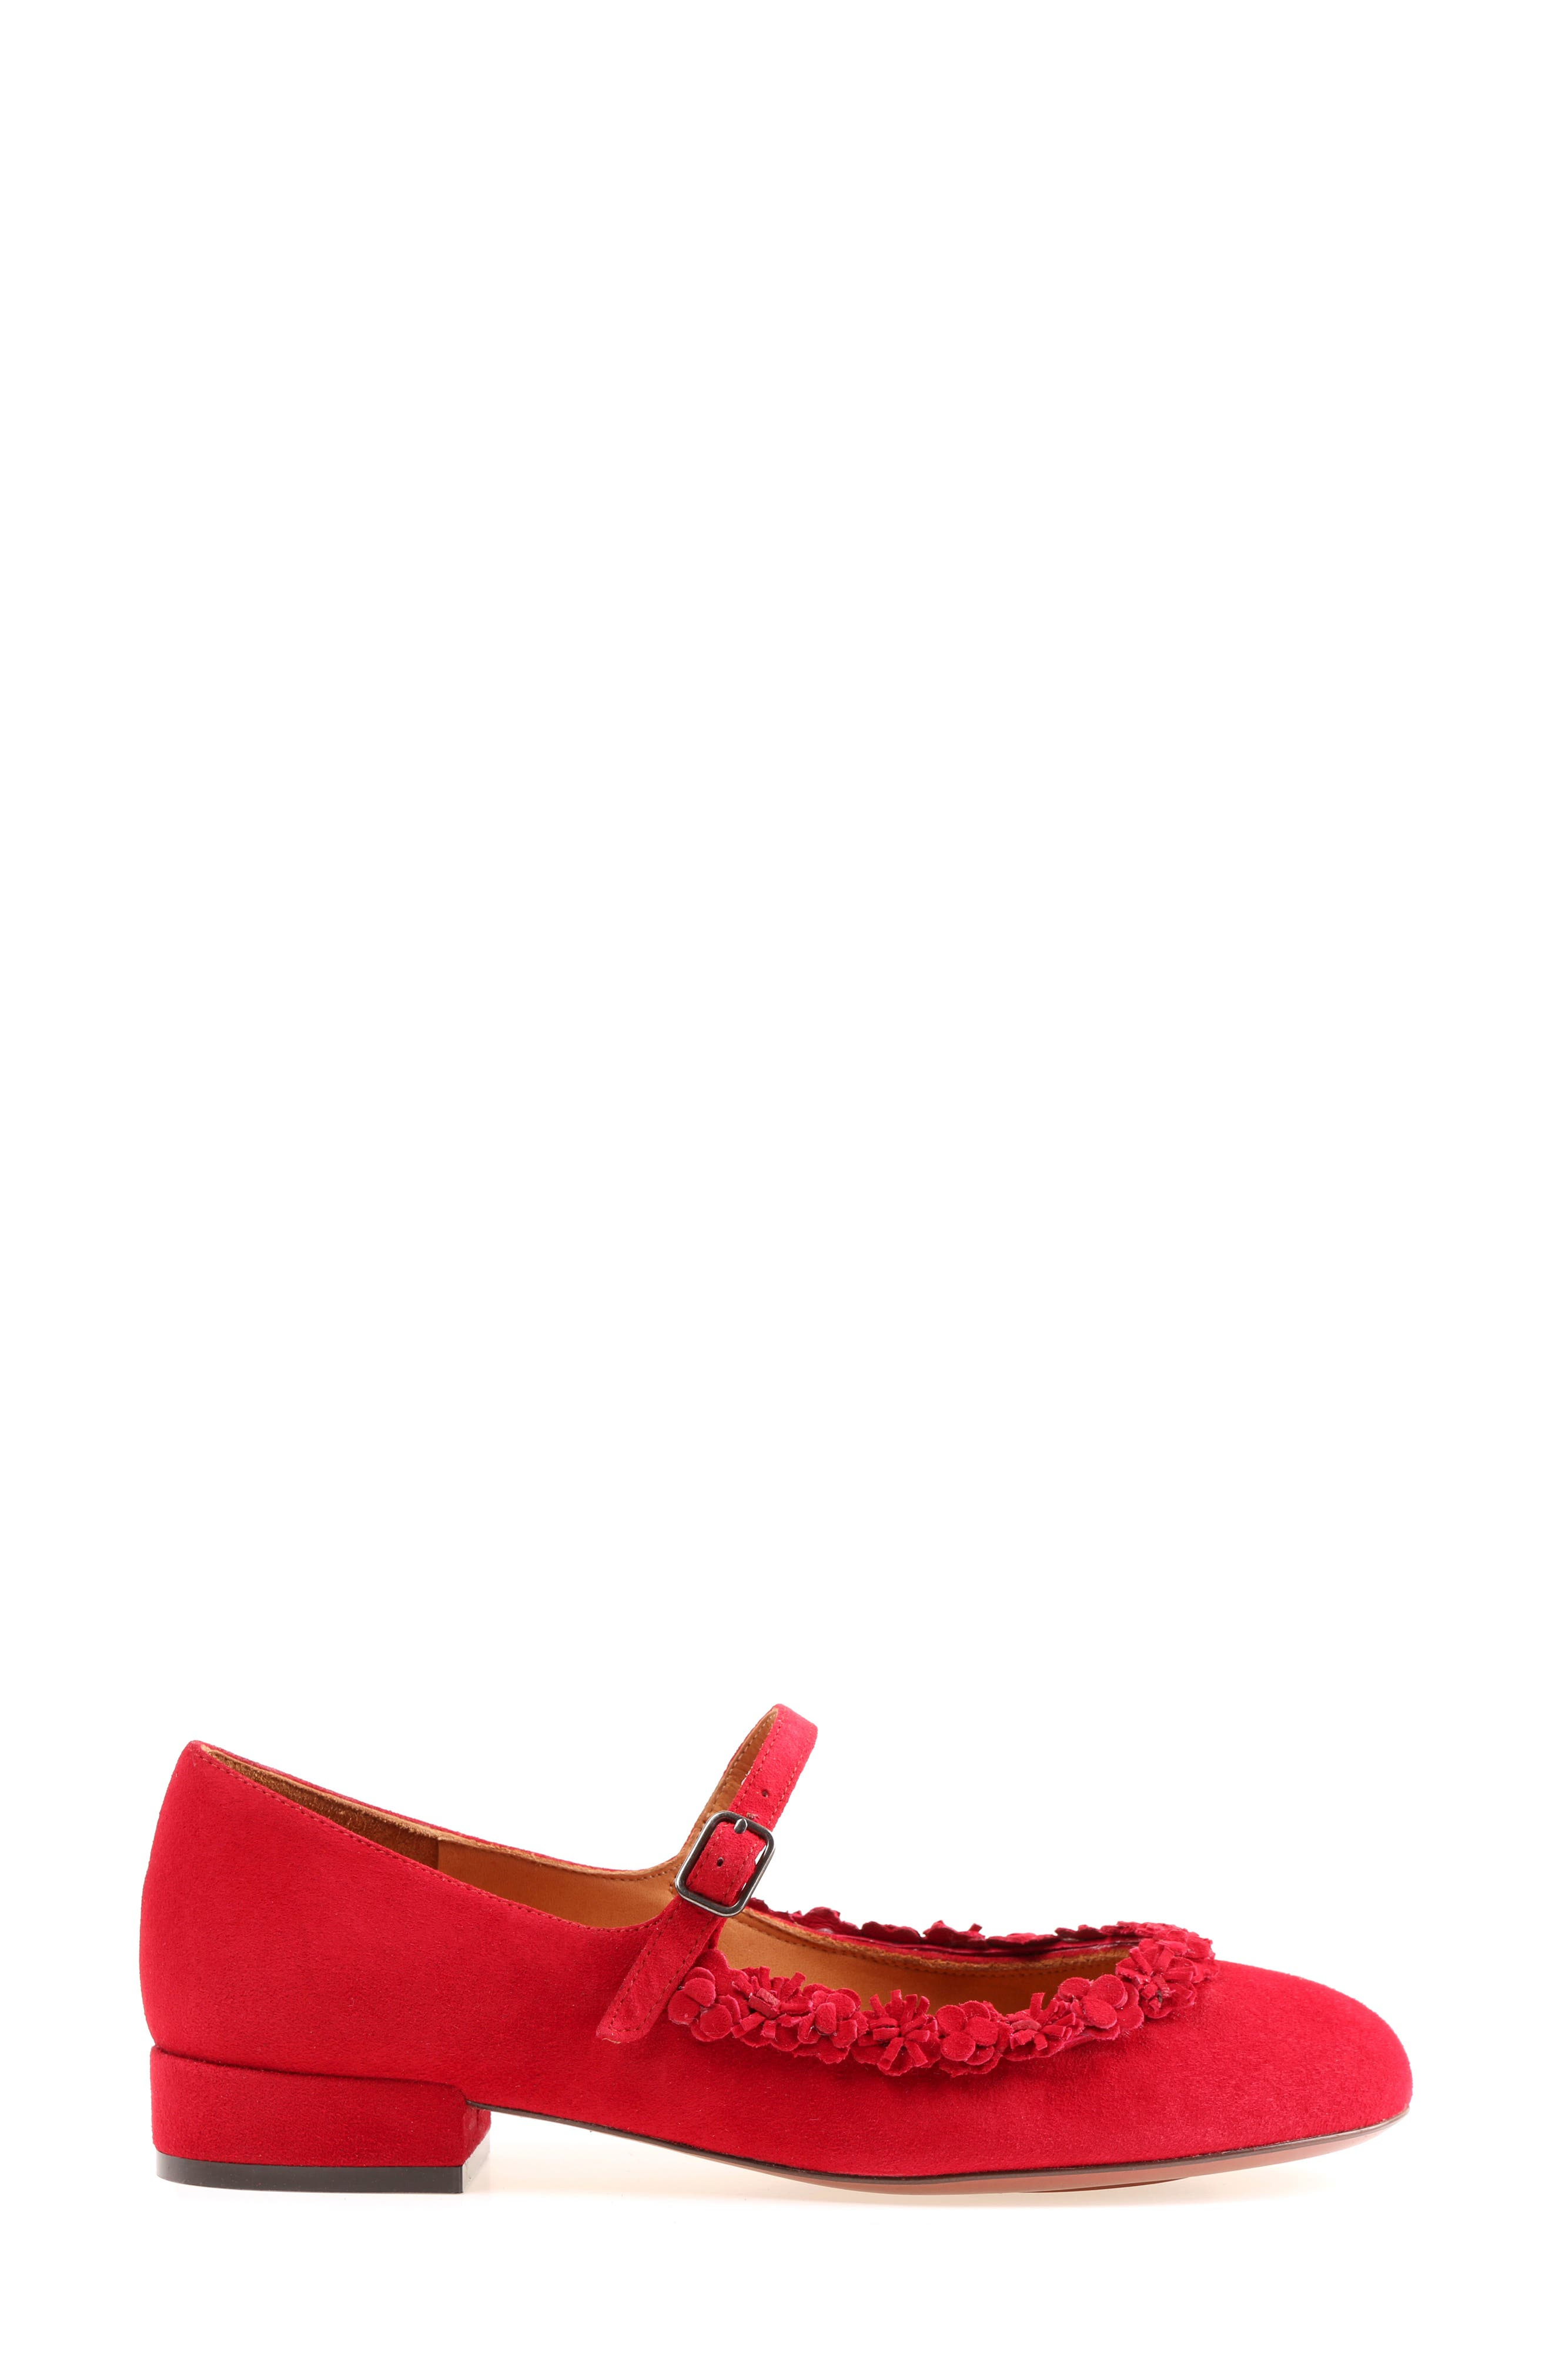 Rizo Mary Jane Flat,                             Alternate thumbnail 3, color,                             Red